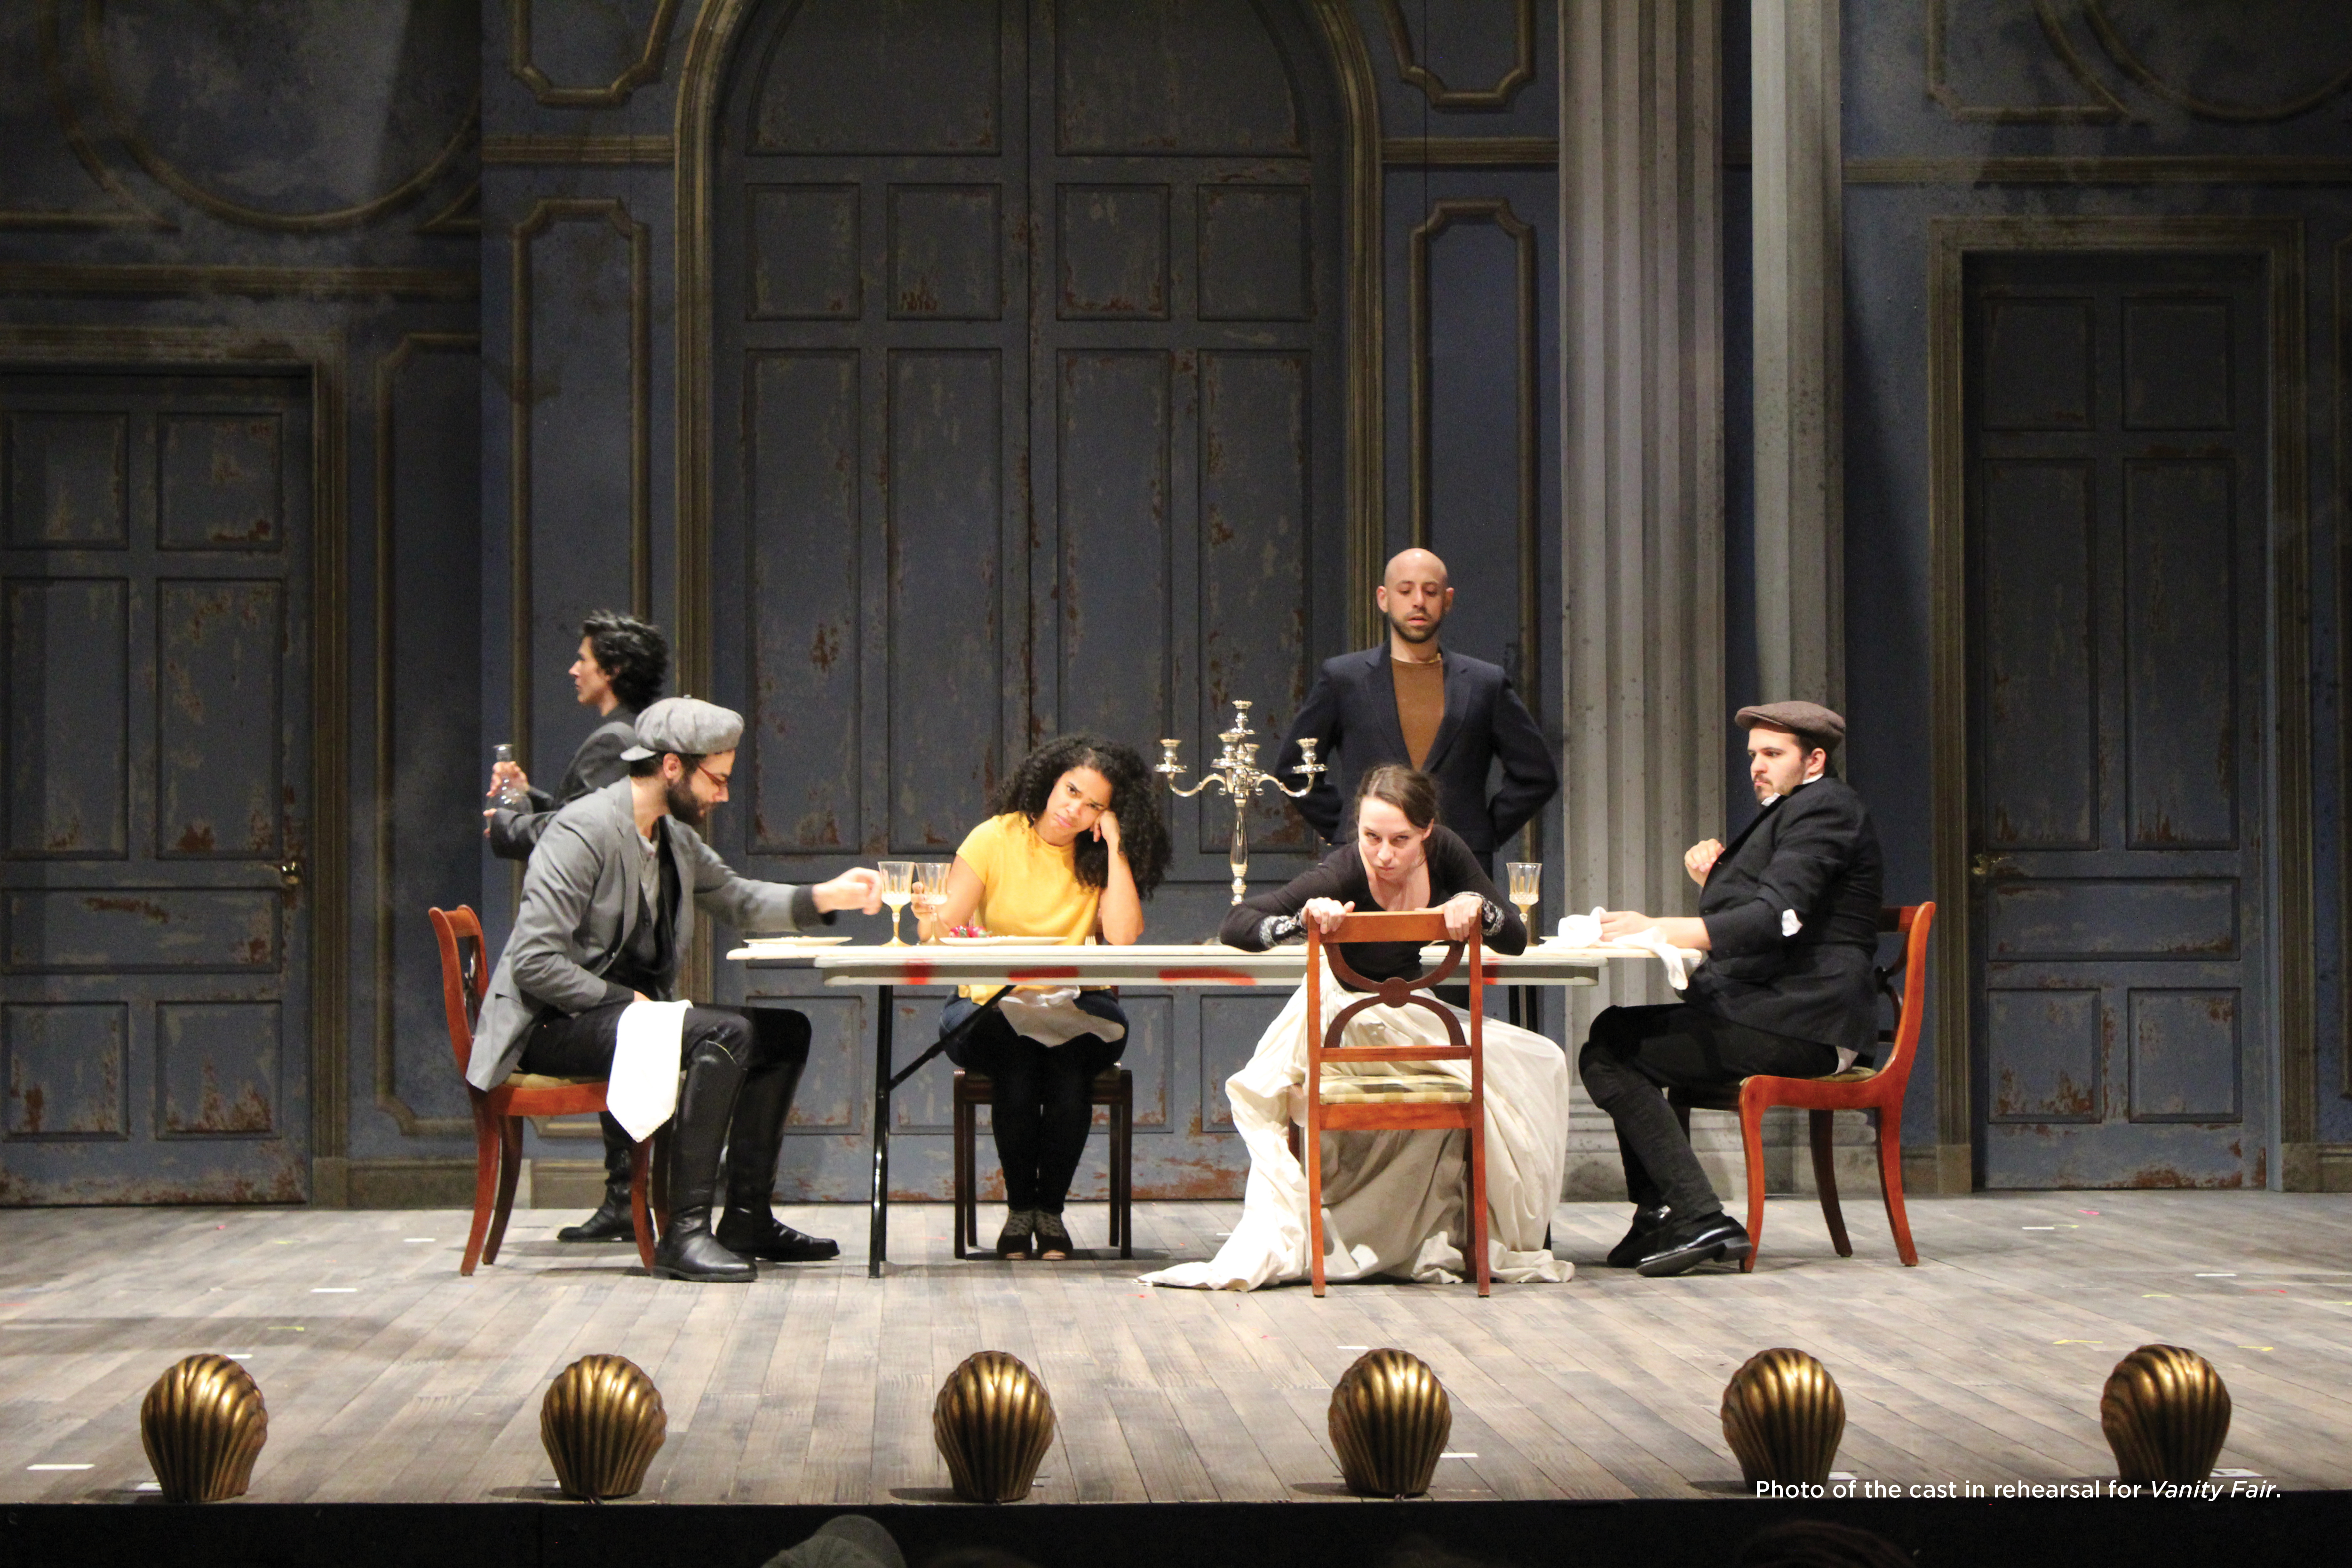 Photo of the cast in rehearsal for Vanity Fair.